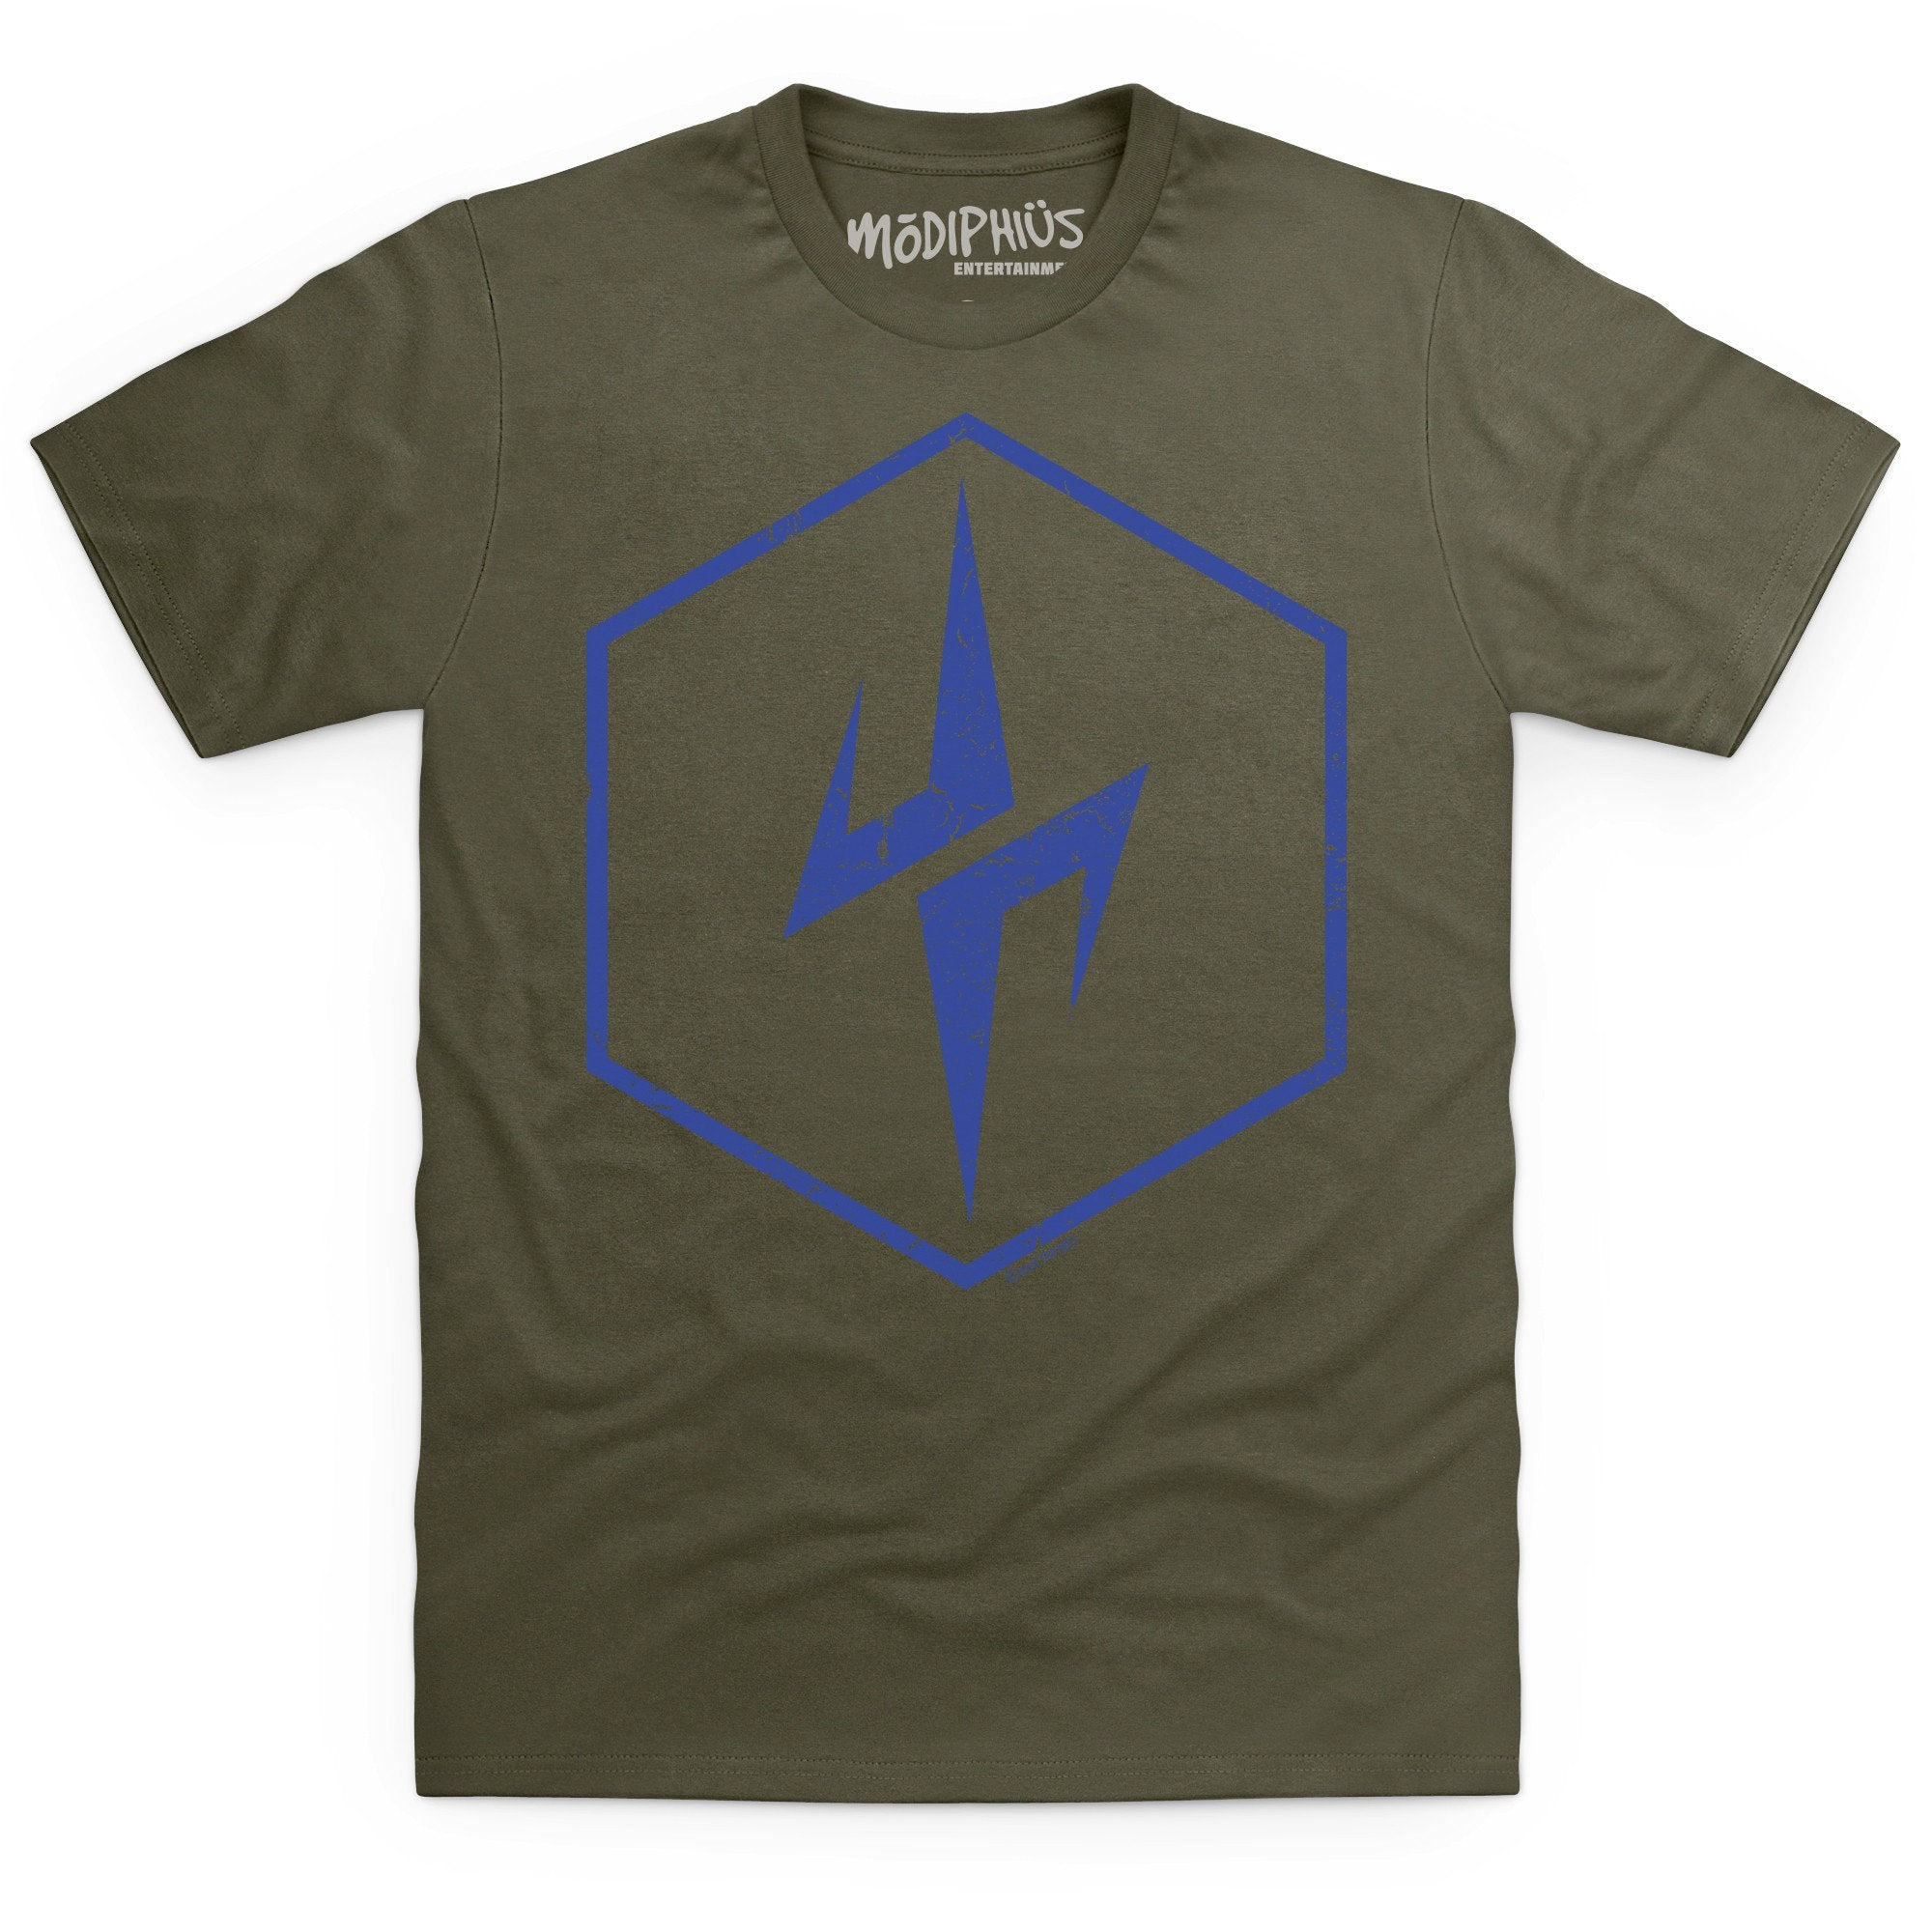 Mutant Chronicles: Cartel distressed t-shirt